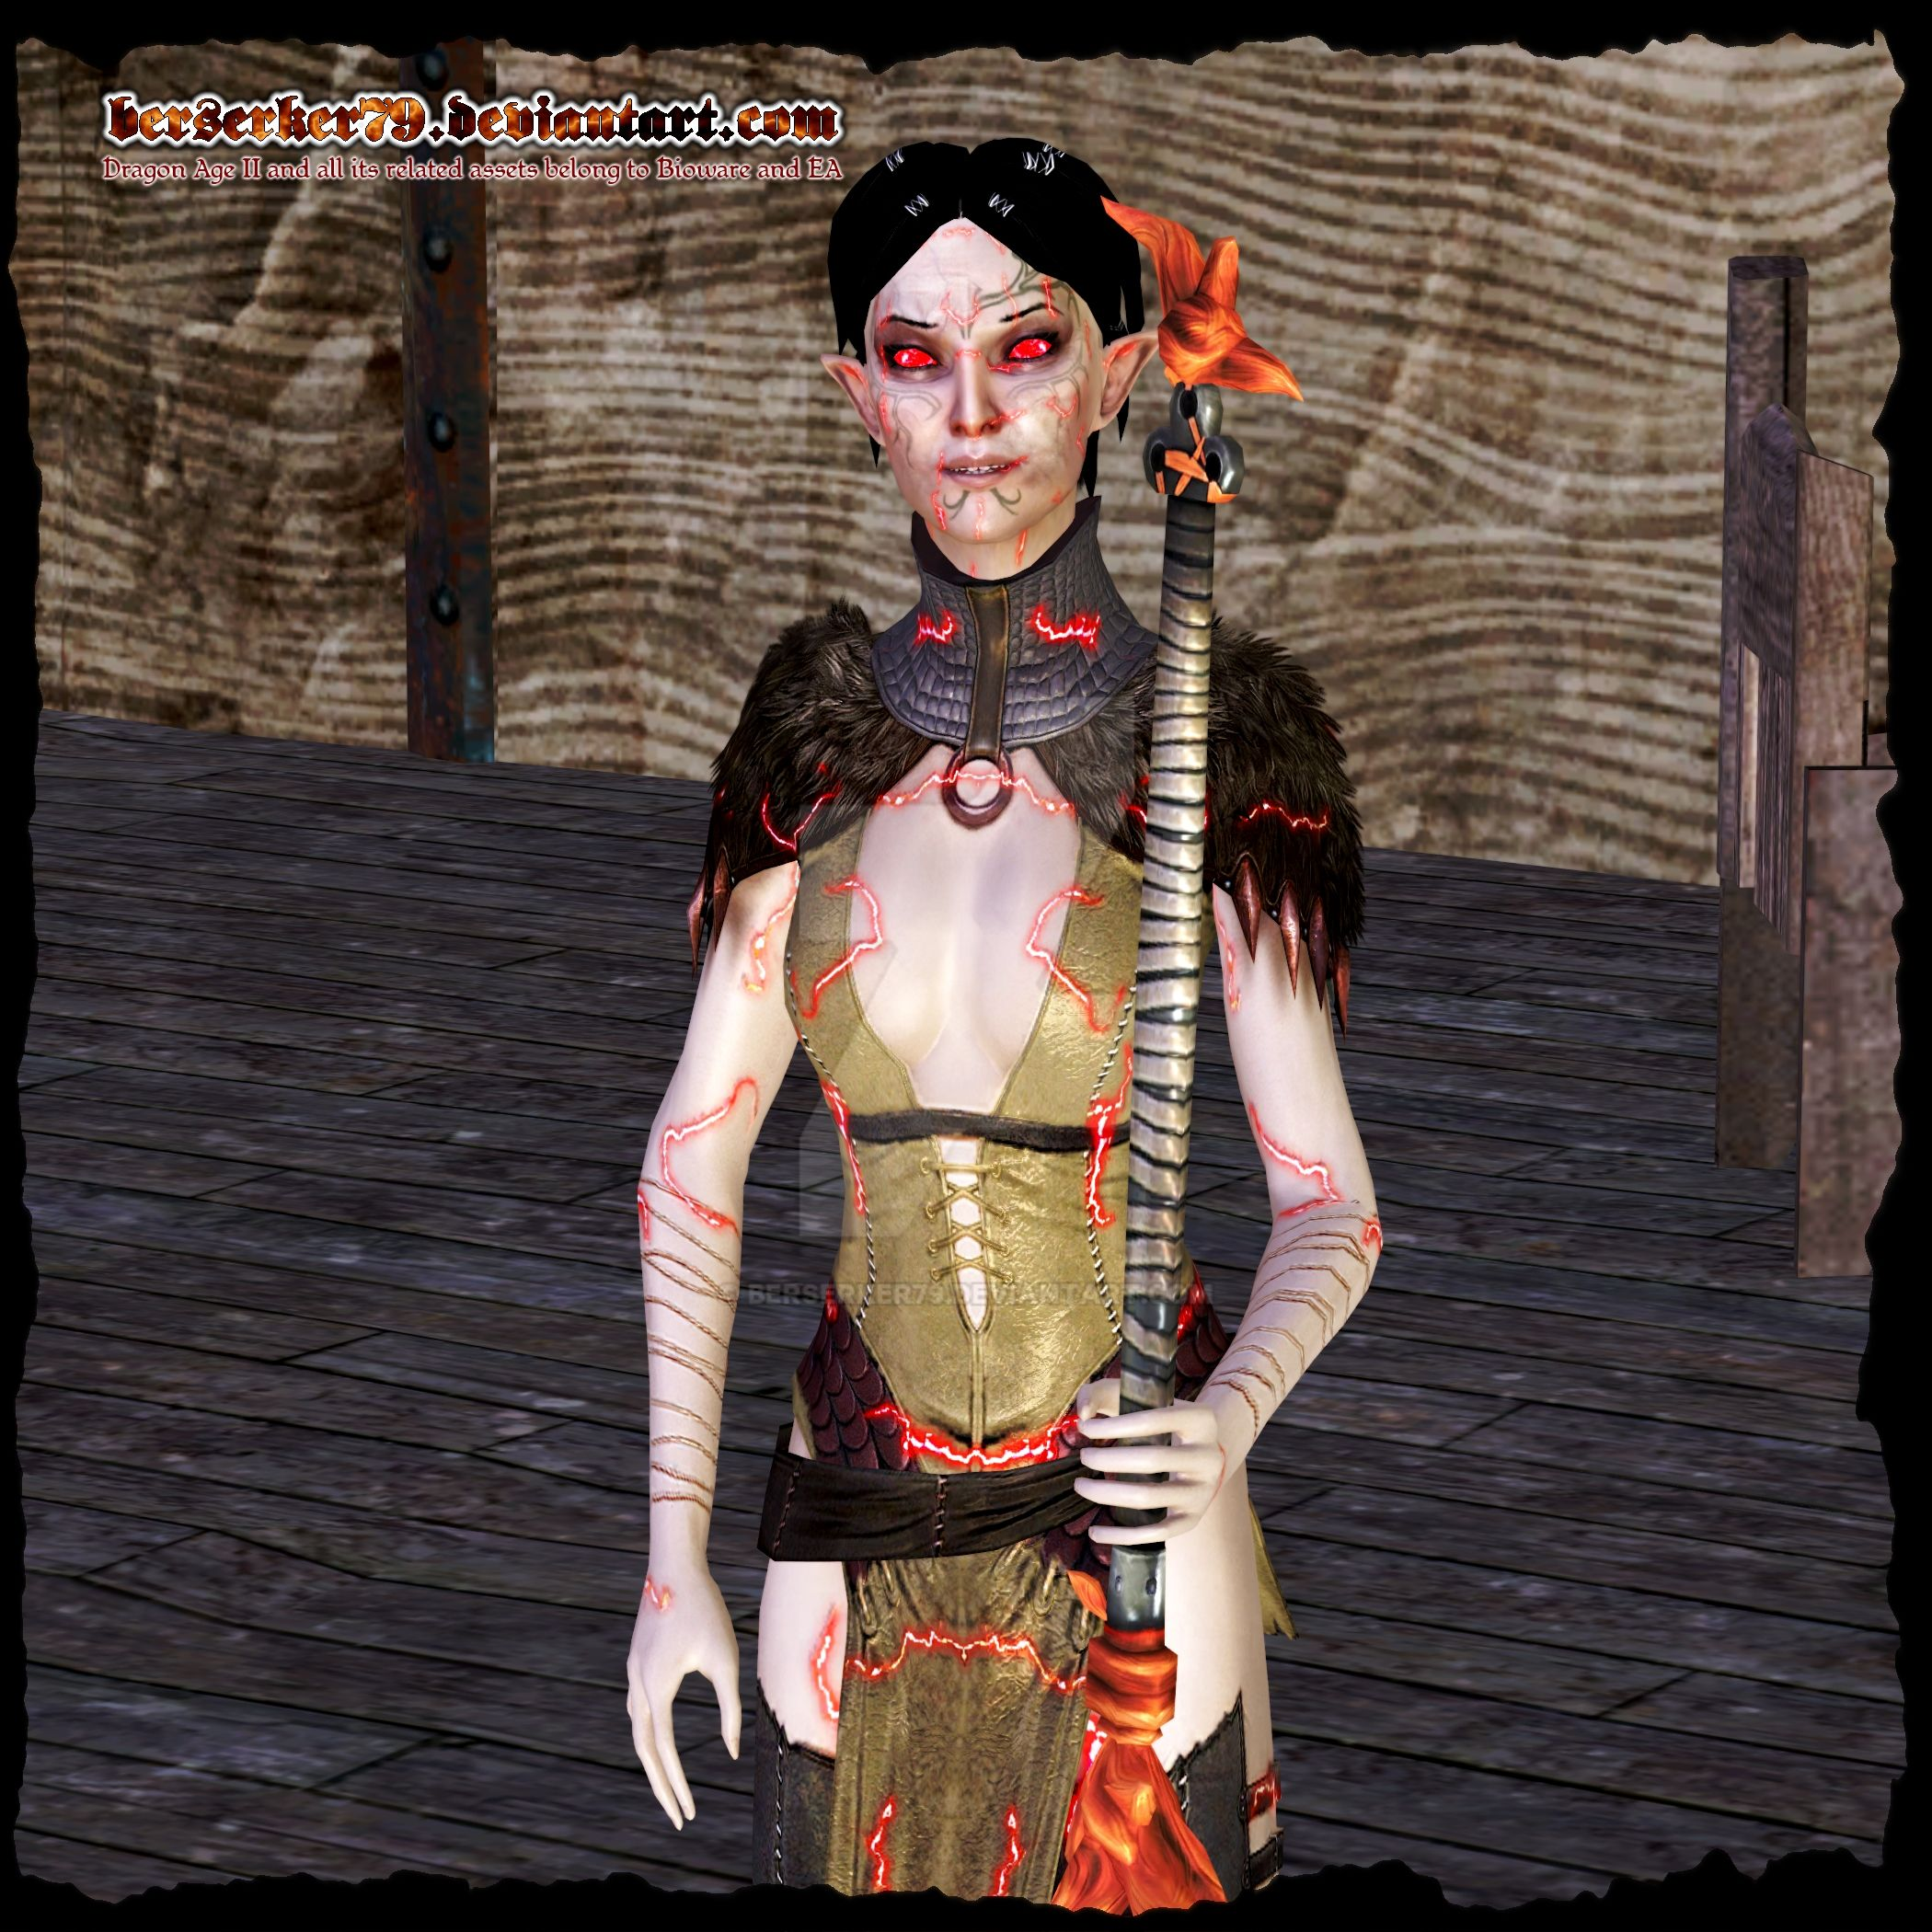 Dragon Age II: Merrill is an Abomination by Berserker79